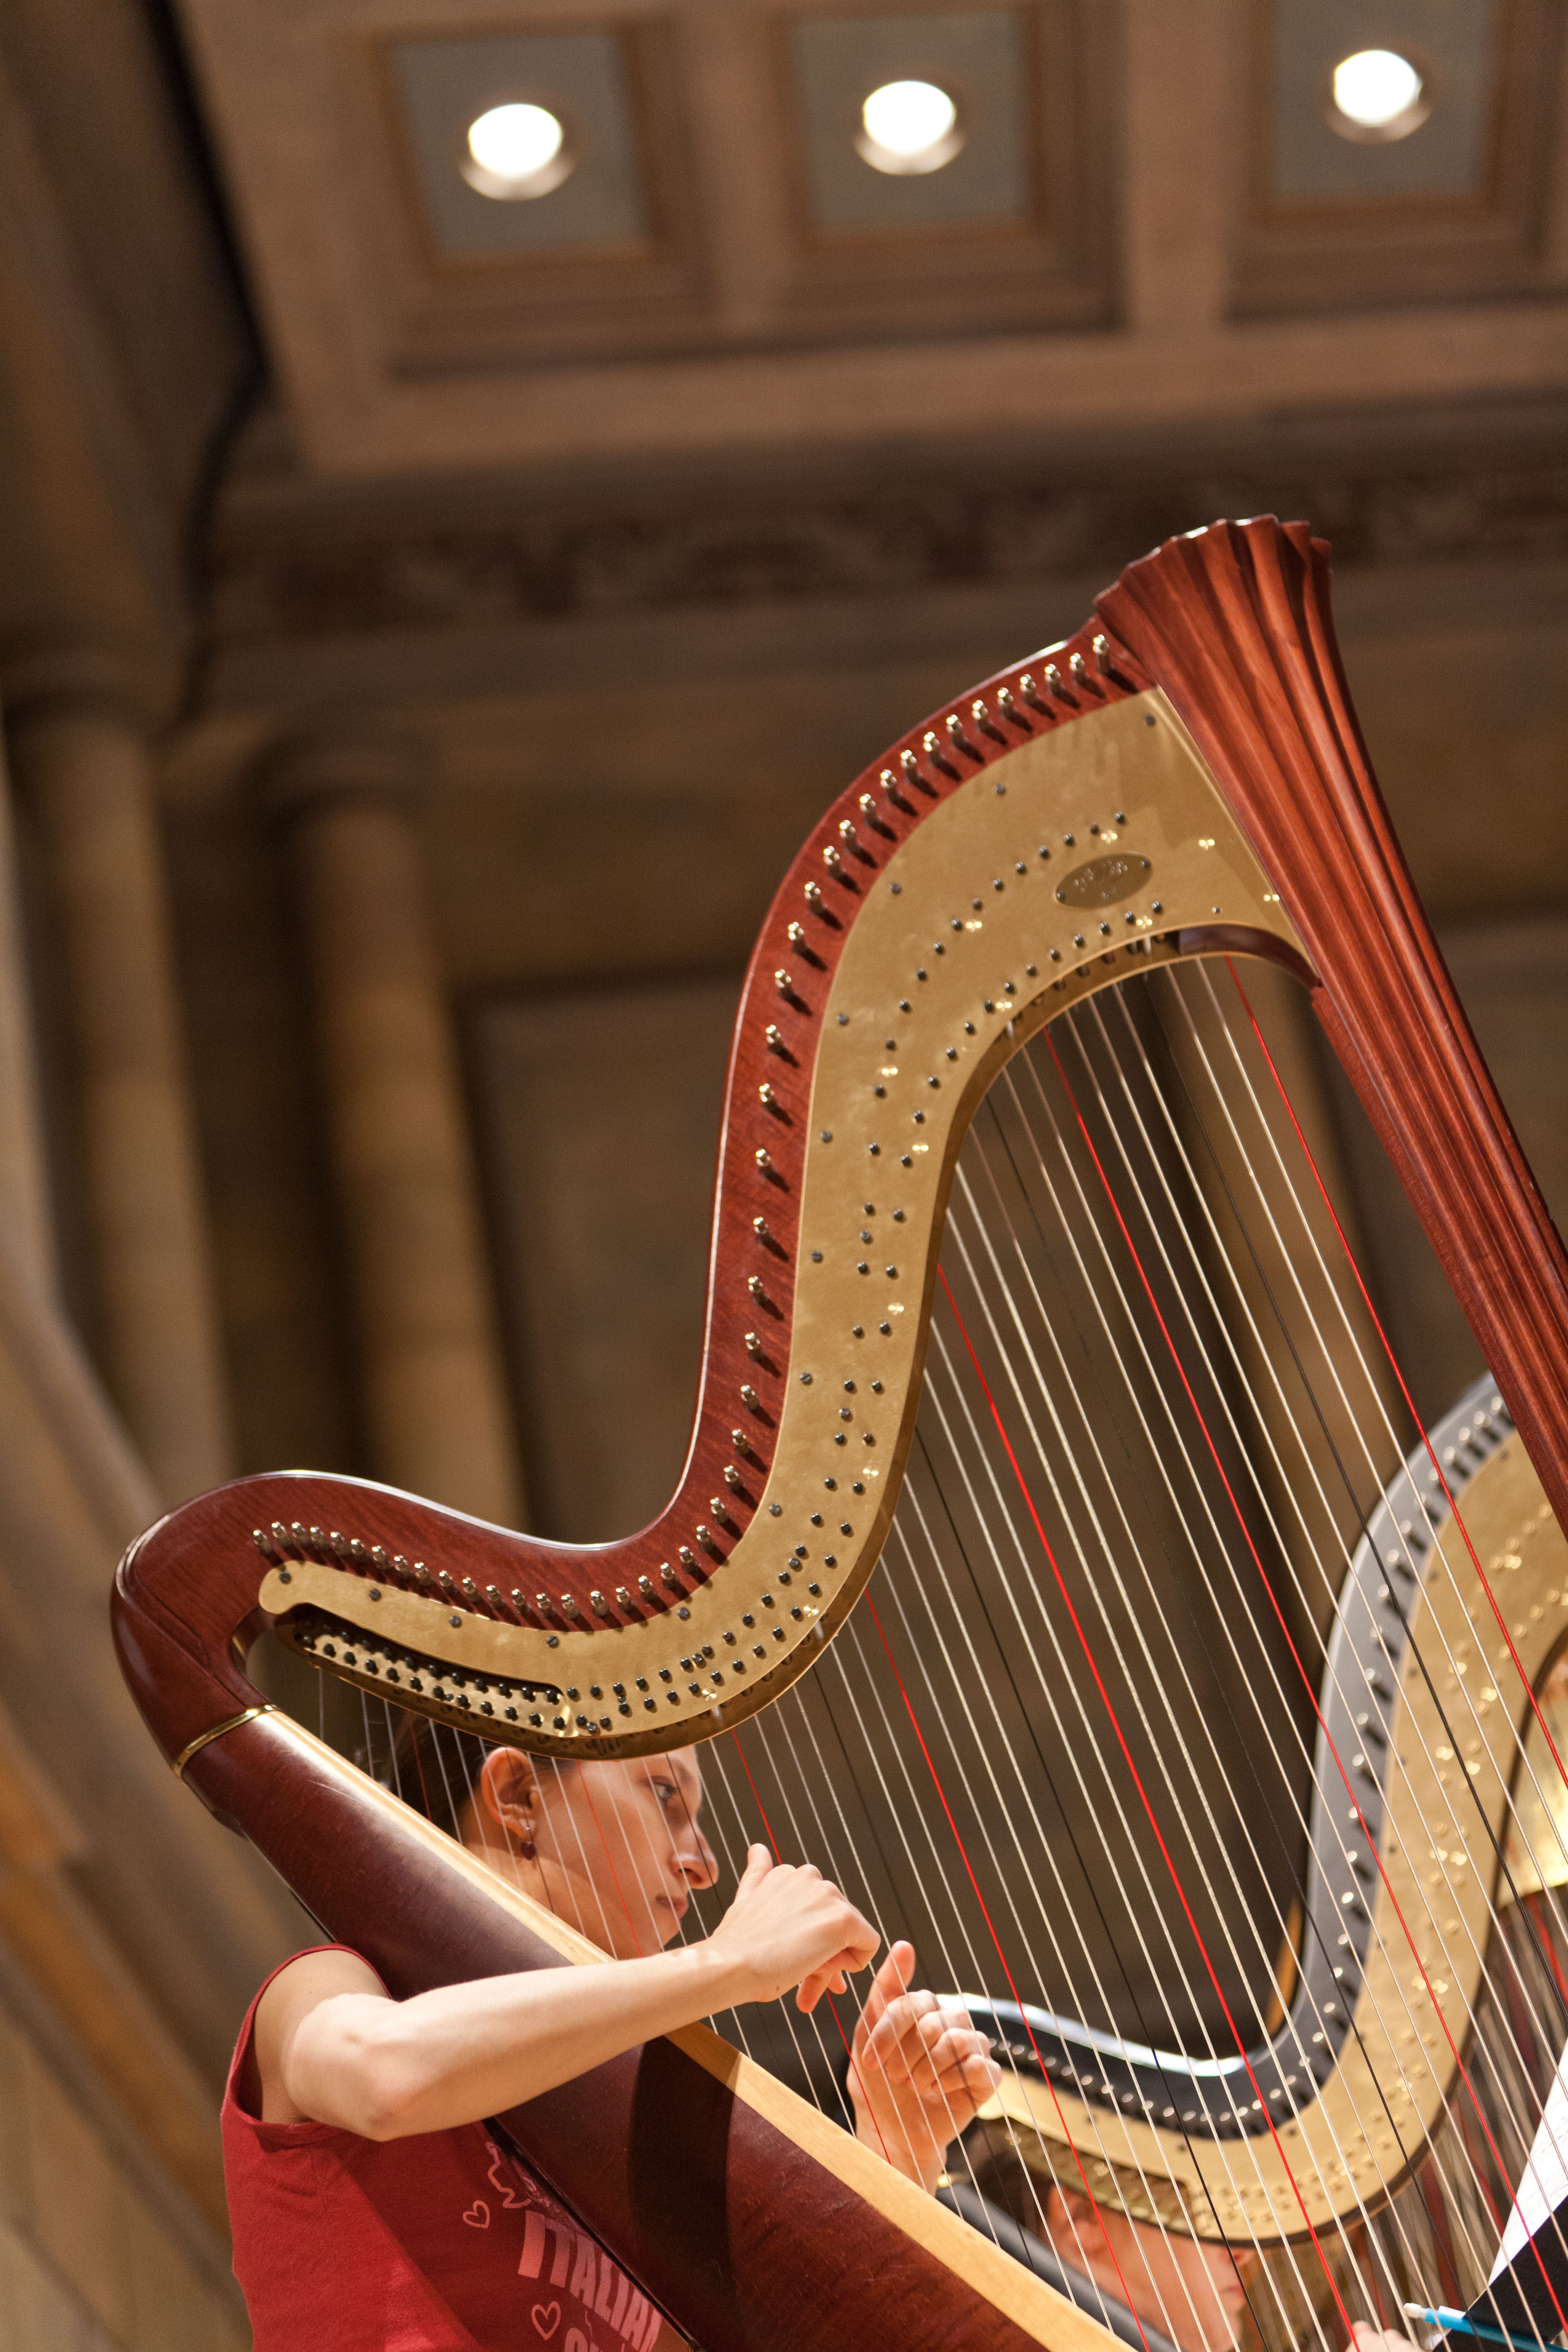 Nan Gullo Bassetts Passion For Harps Modern And Historical